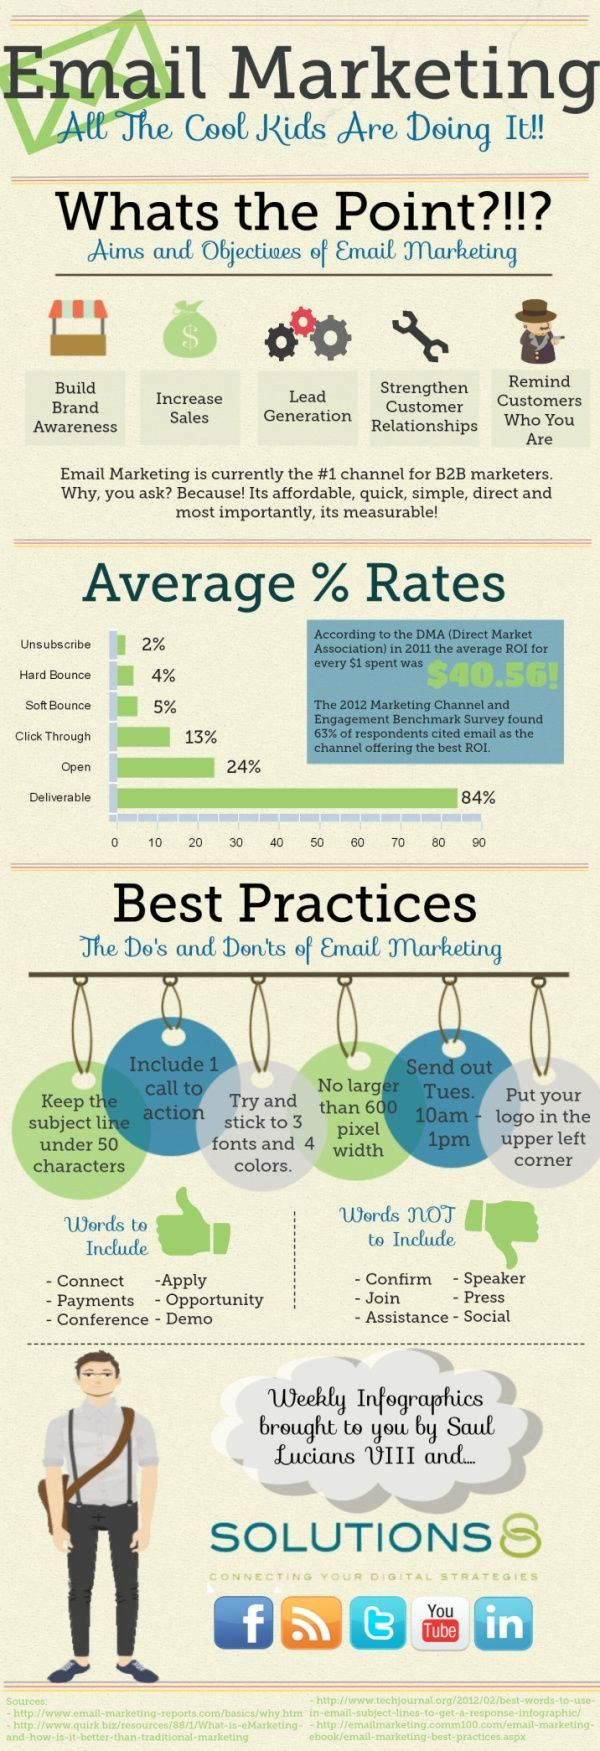 Email Marketing - All Th Cool Kids Ar Doing It!! #infographic